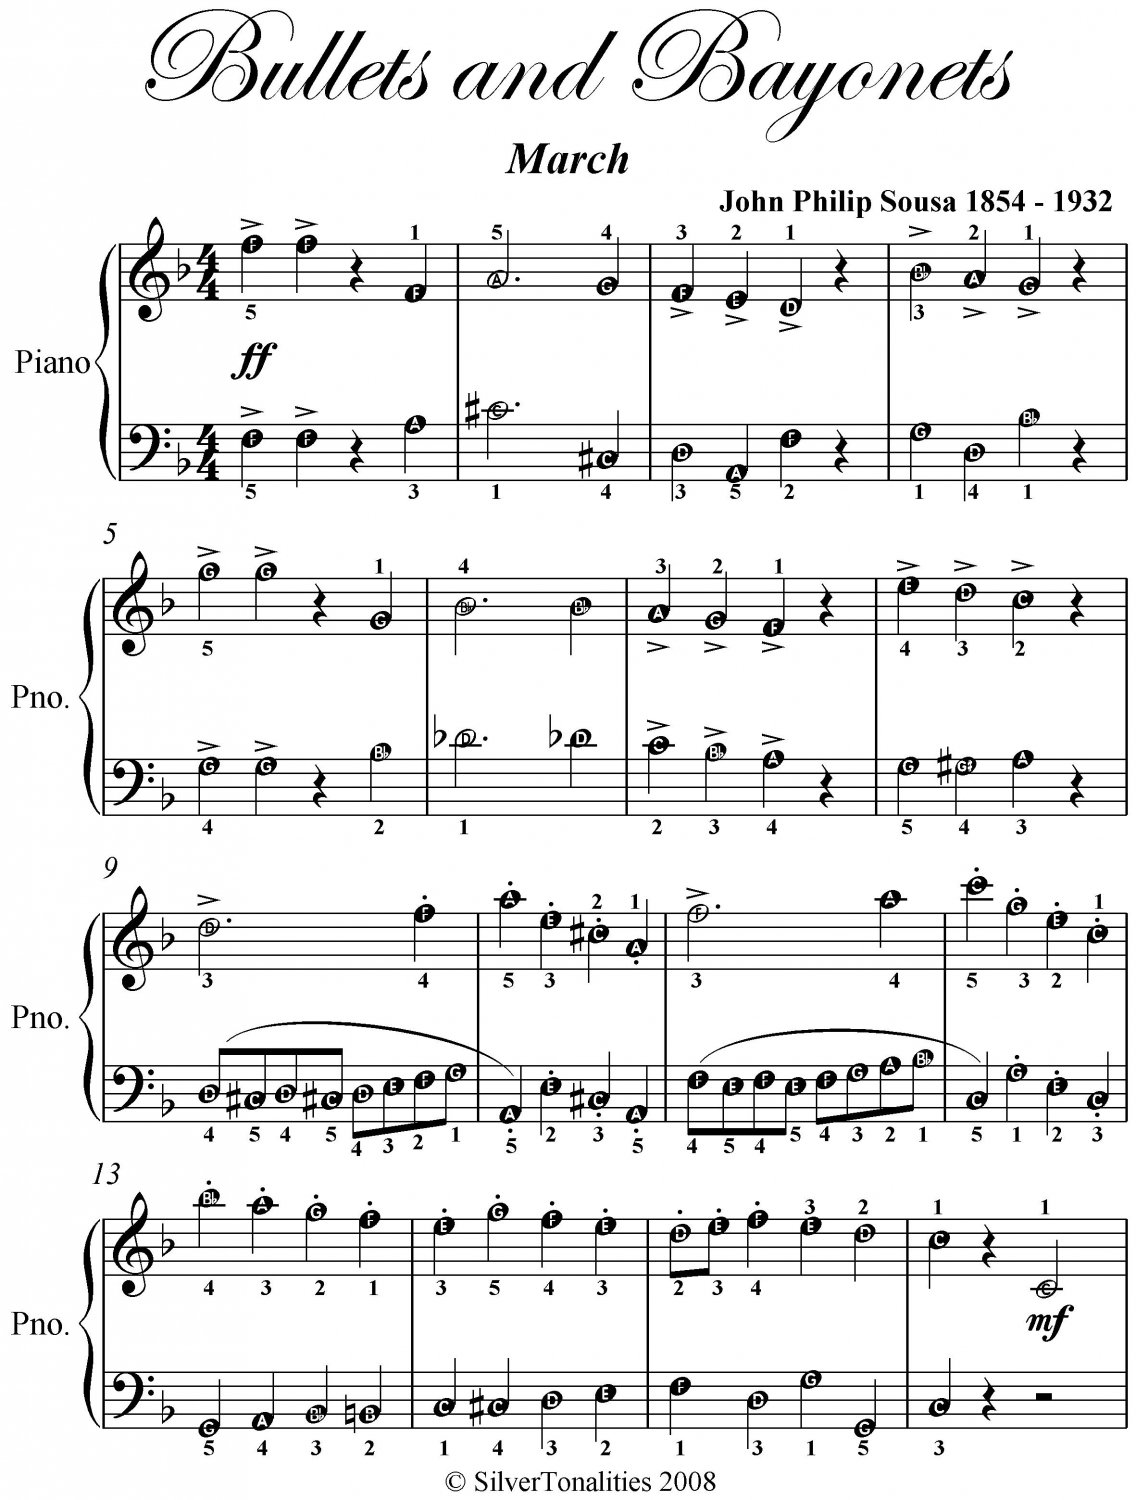 Bullets and Bayonets March Easy Piano Sheet Music PDF